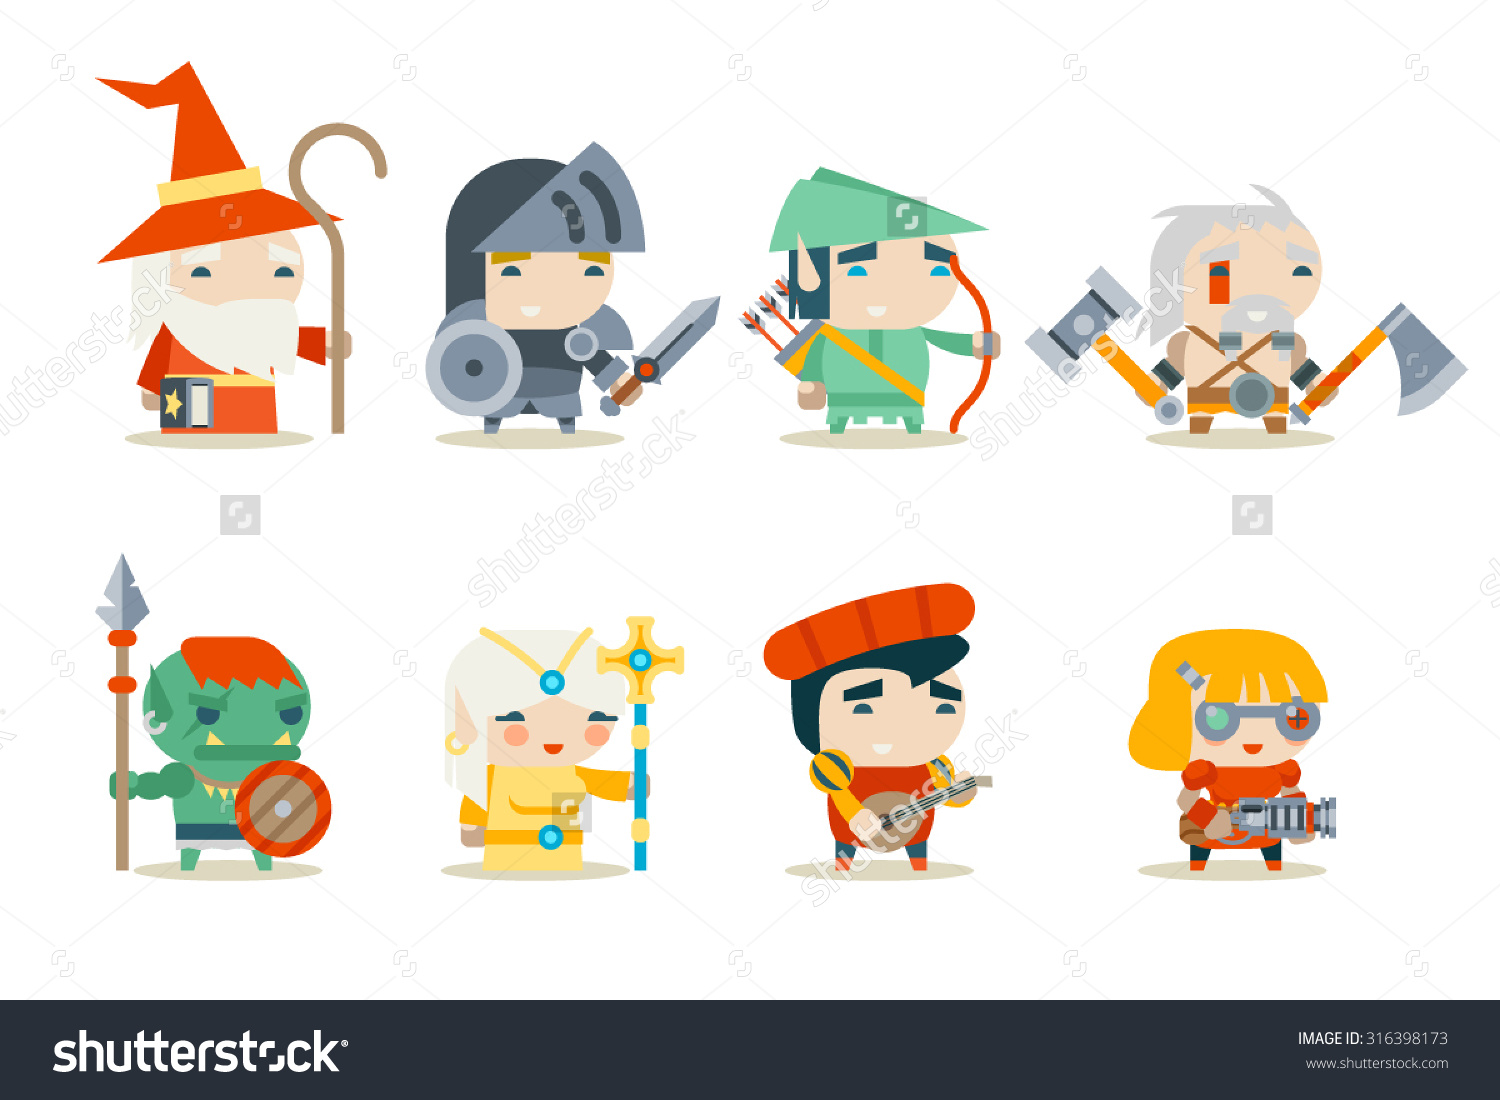 Character Design Icon : Role playing game clipart clipground